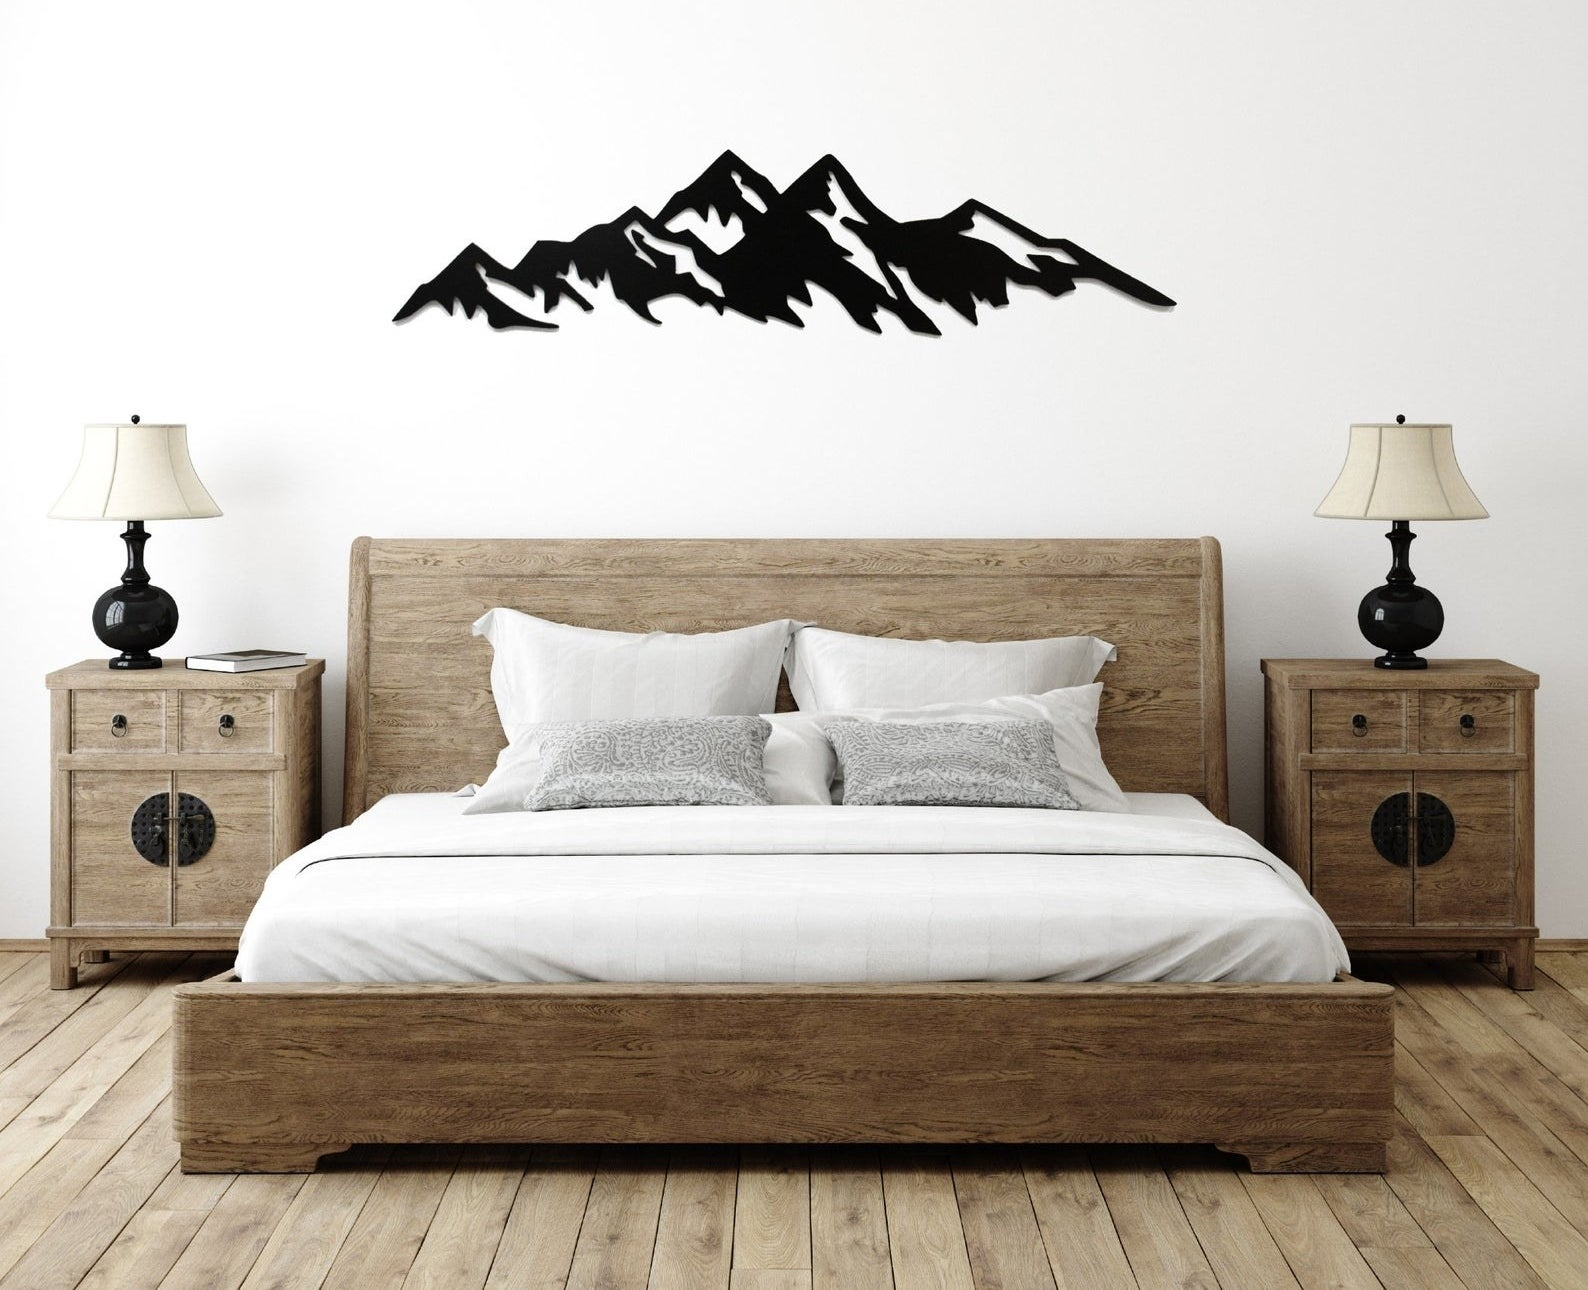 A minimalist black metal mountain range installed above a bed